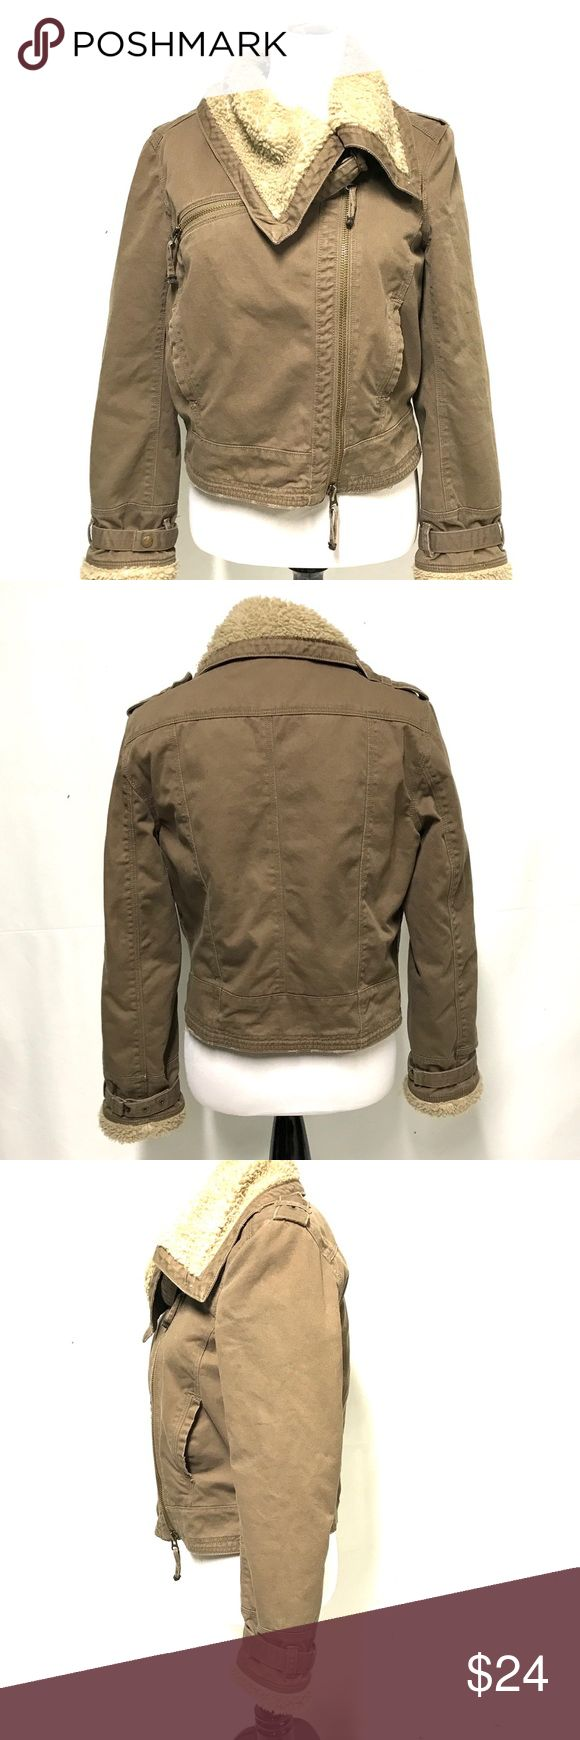 French connection bomber style jacket French connection bomber jacket in canvas like shell and faux shearling lining. VERY WARM!! I zipper closure just left of center front. Overall exterior is in very good pre-owed condition. French Connection Jackets & Coats